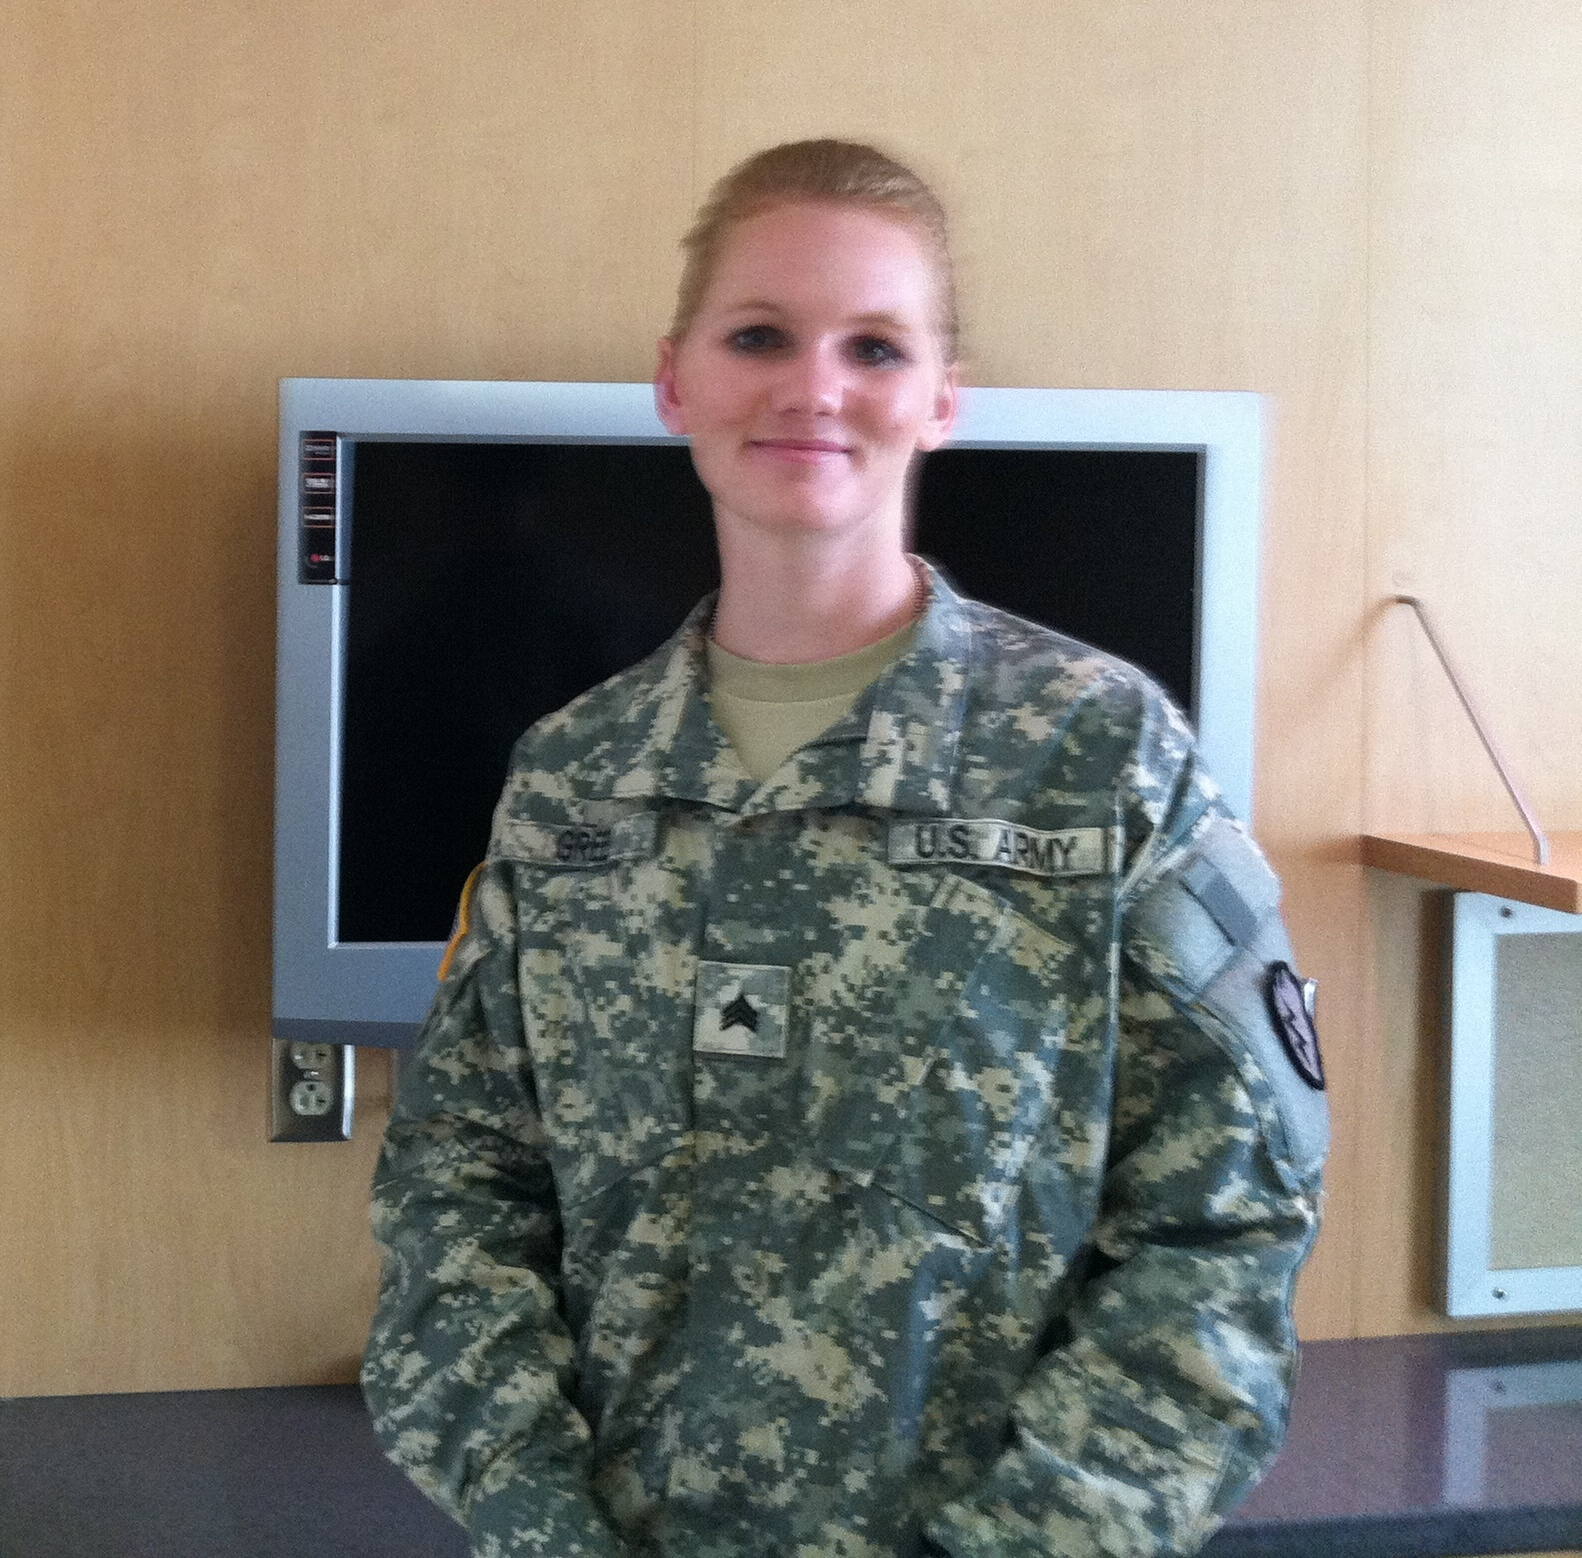 an army sgt recovering from tbi works to stay in uniform